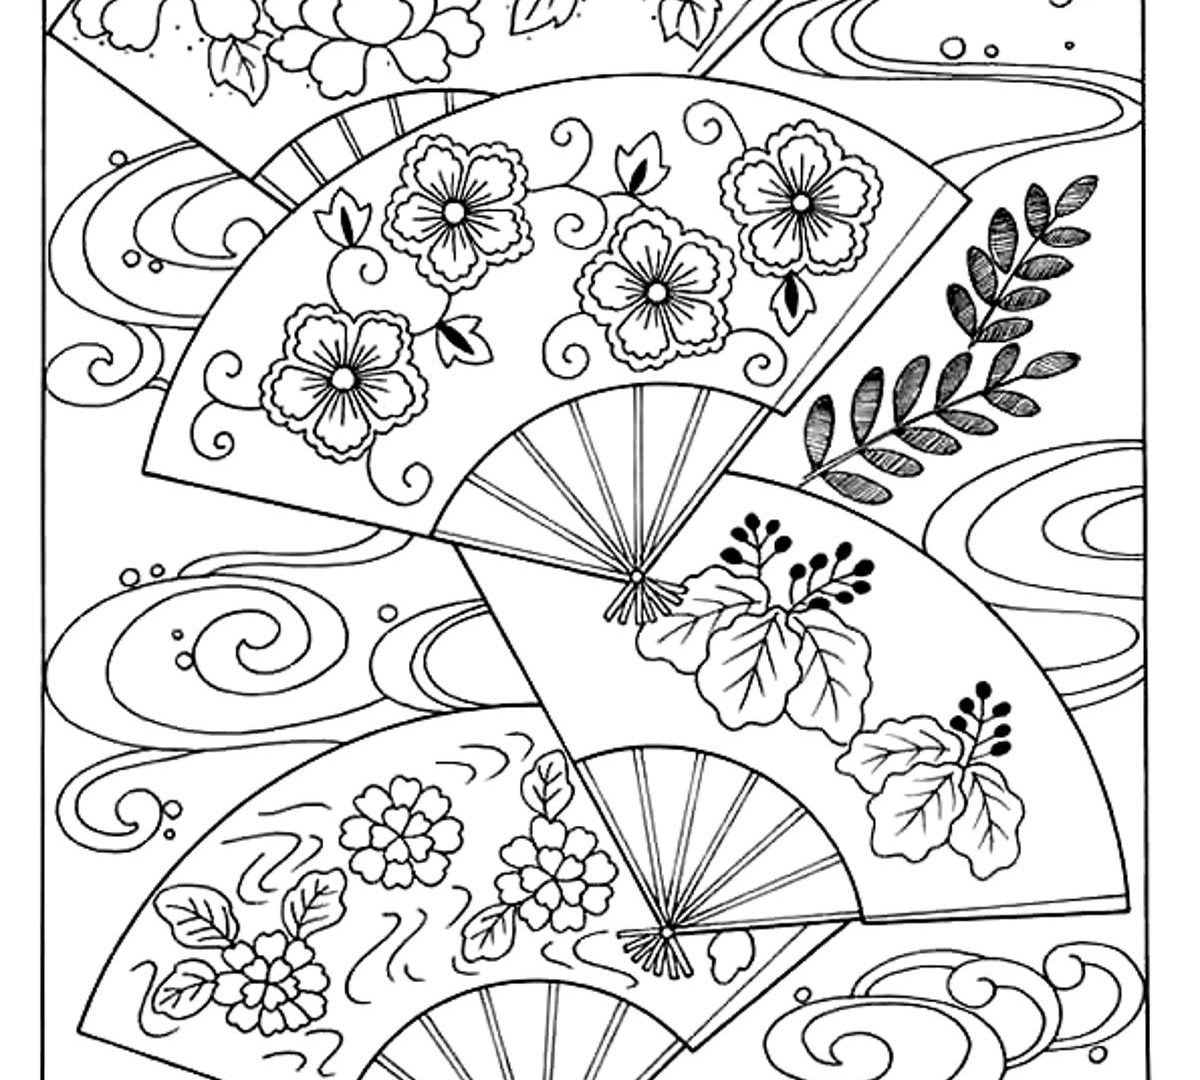 Japanese Garden Coloring Pages At Getcolorings